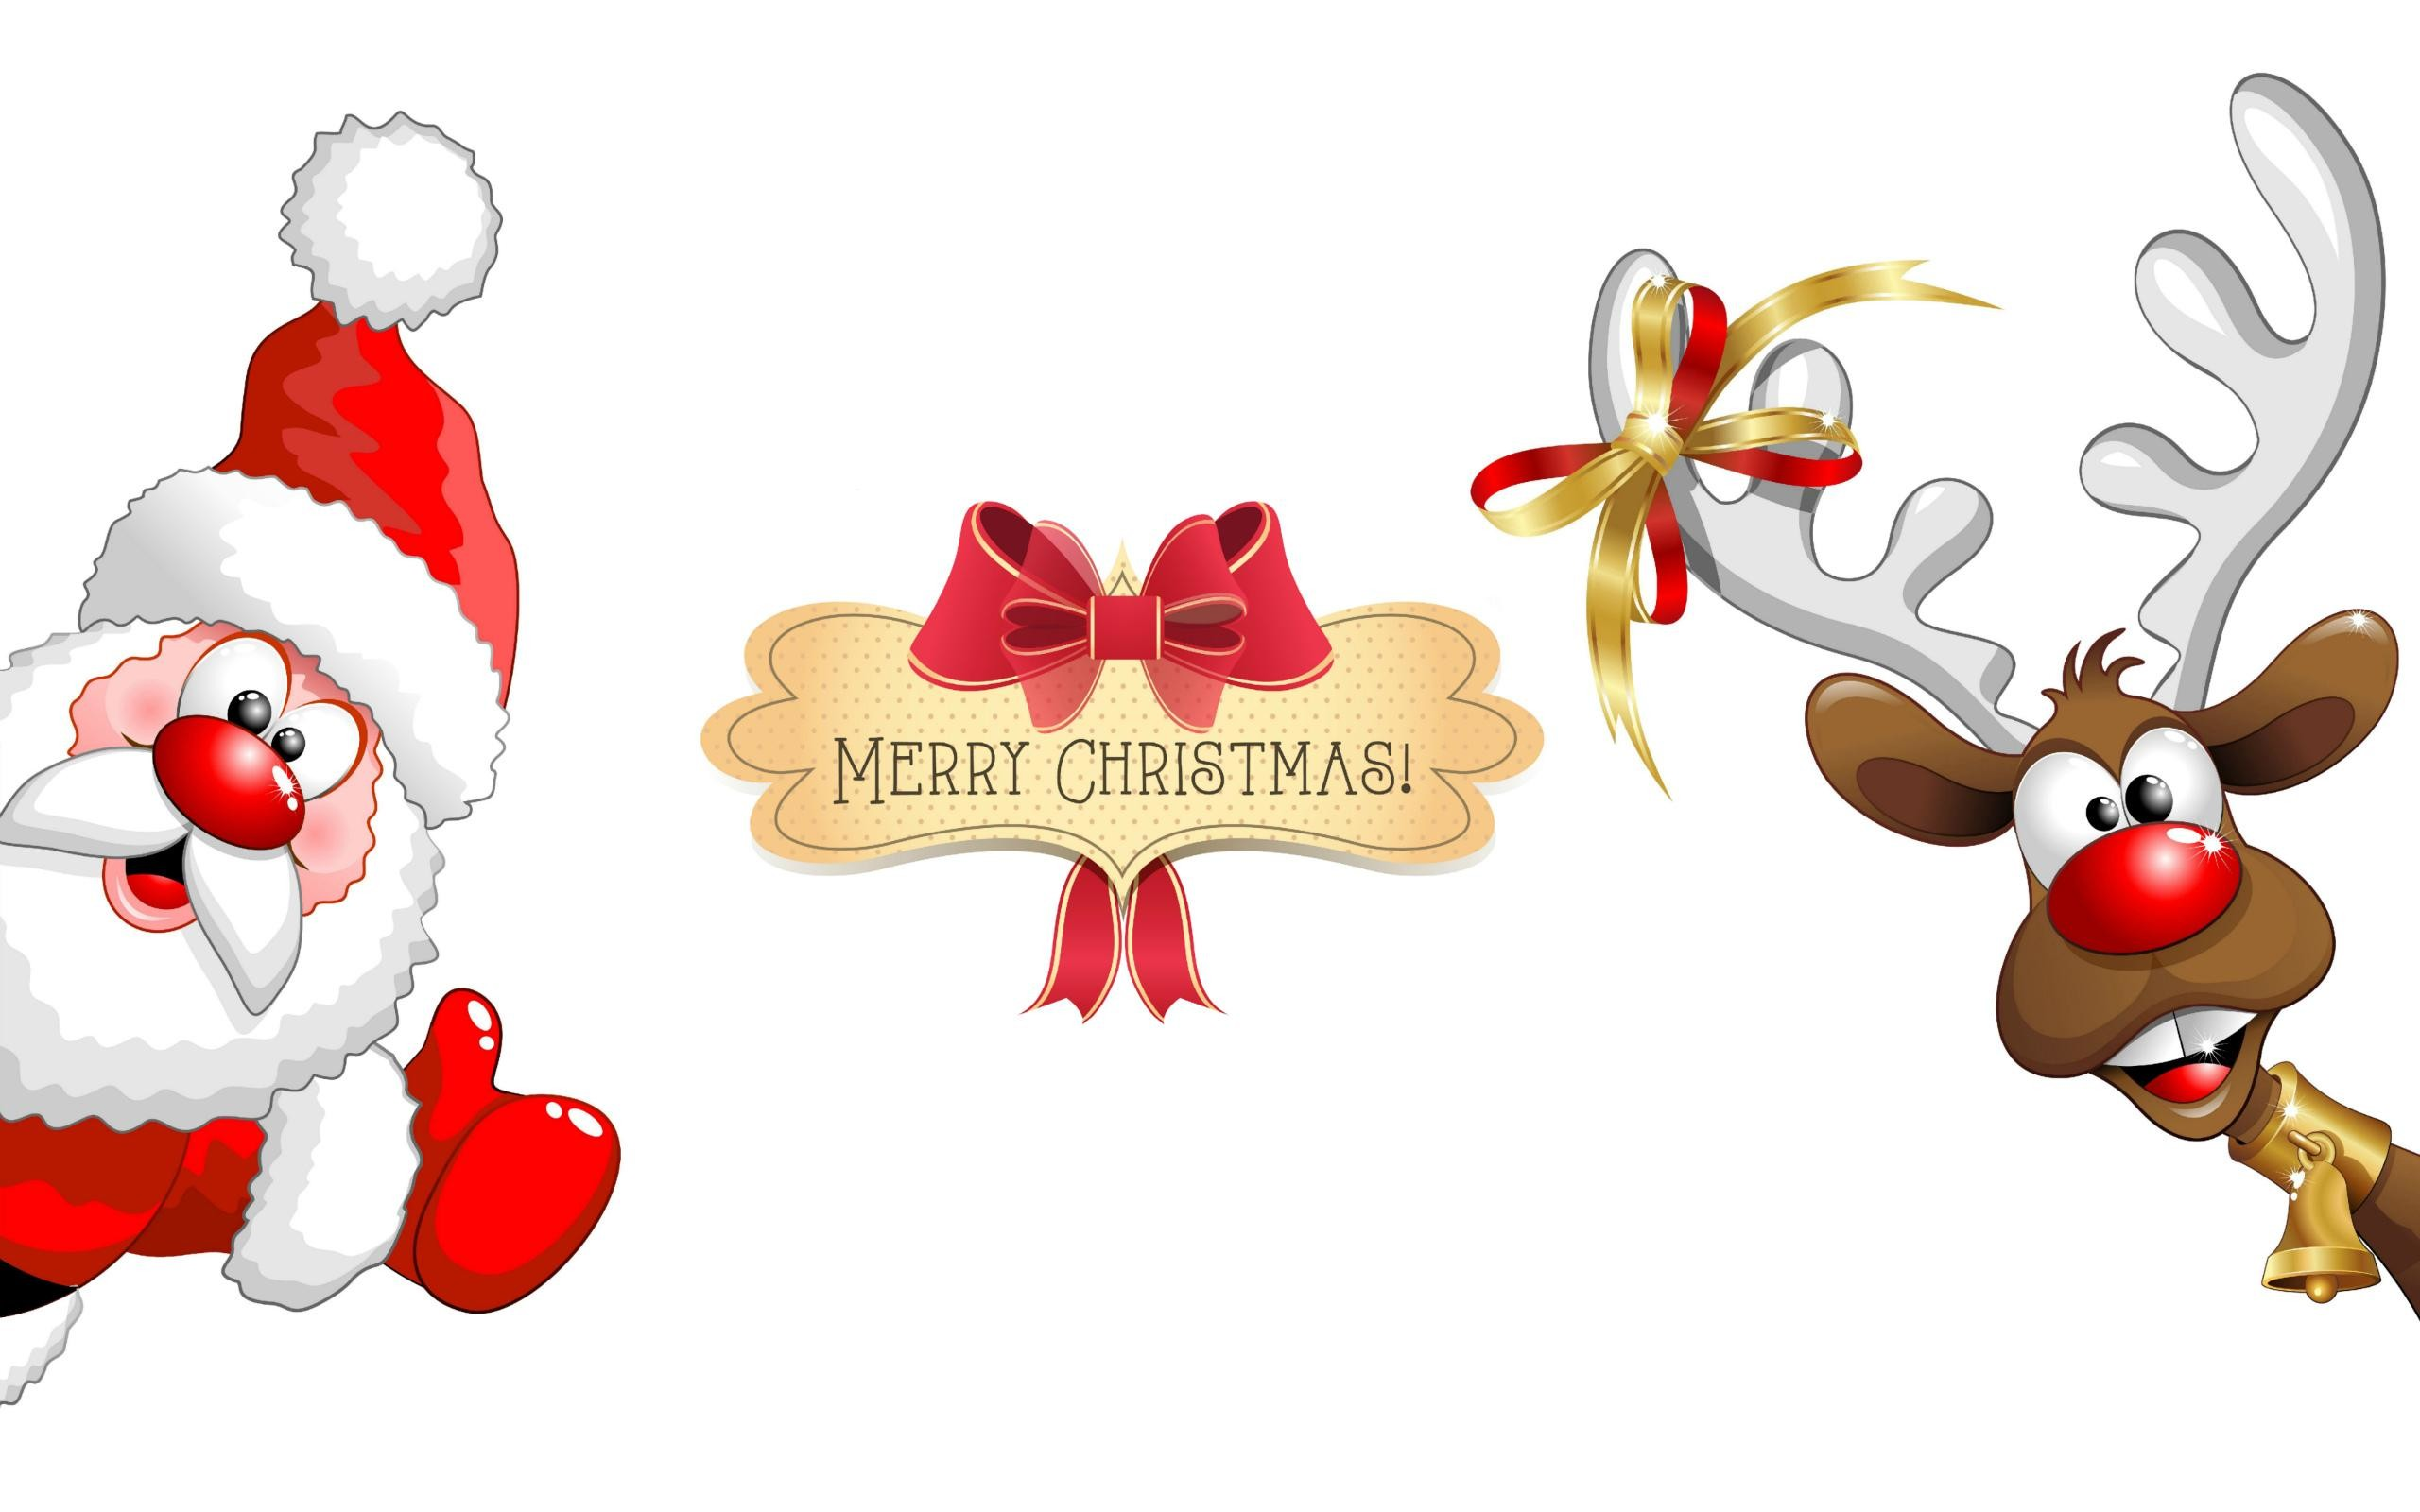 Funny Christmas Wallpaper.Funny Christmas Wallpapers 58 Background Pictures